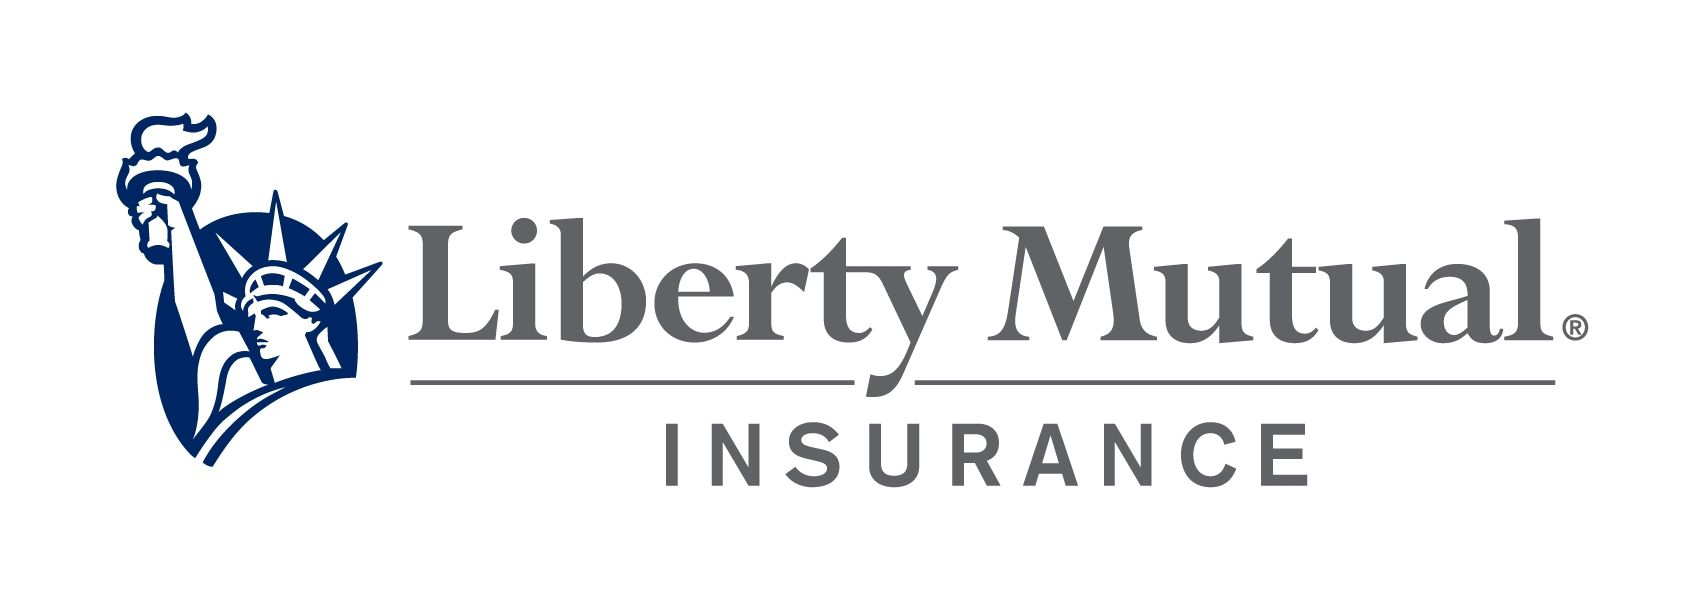 Learn More About Liberty Mutual Insurance Liberty Mutual Mutual Insurance Life Insurance Policy